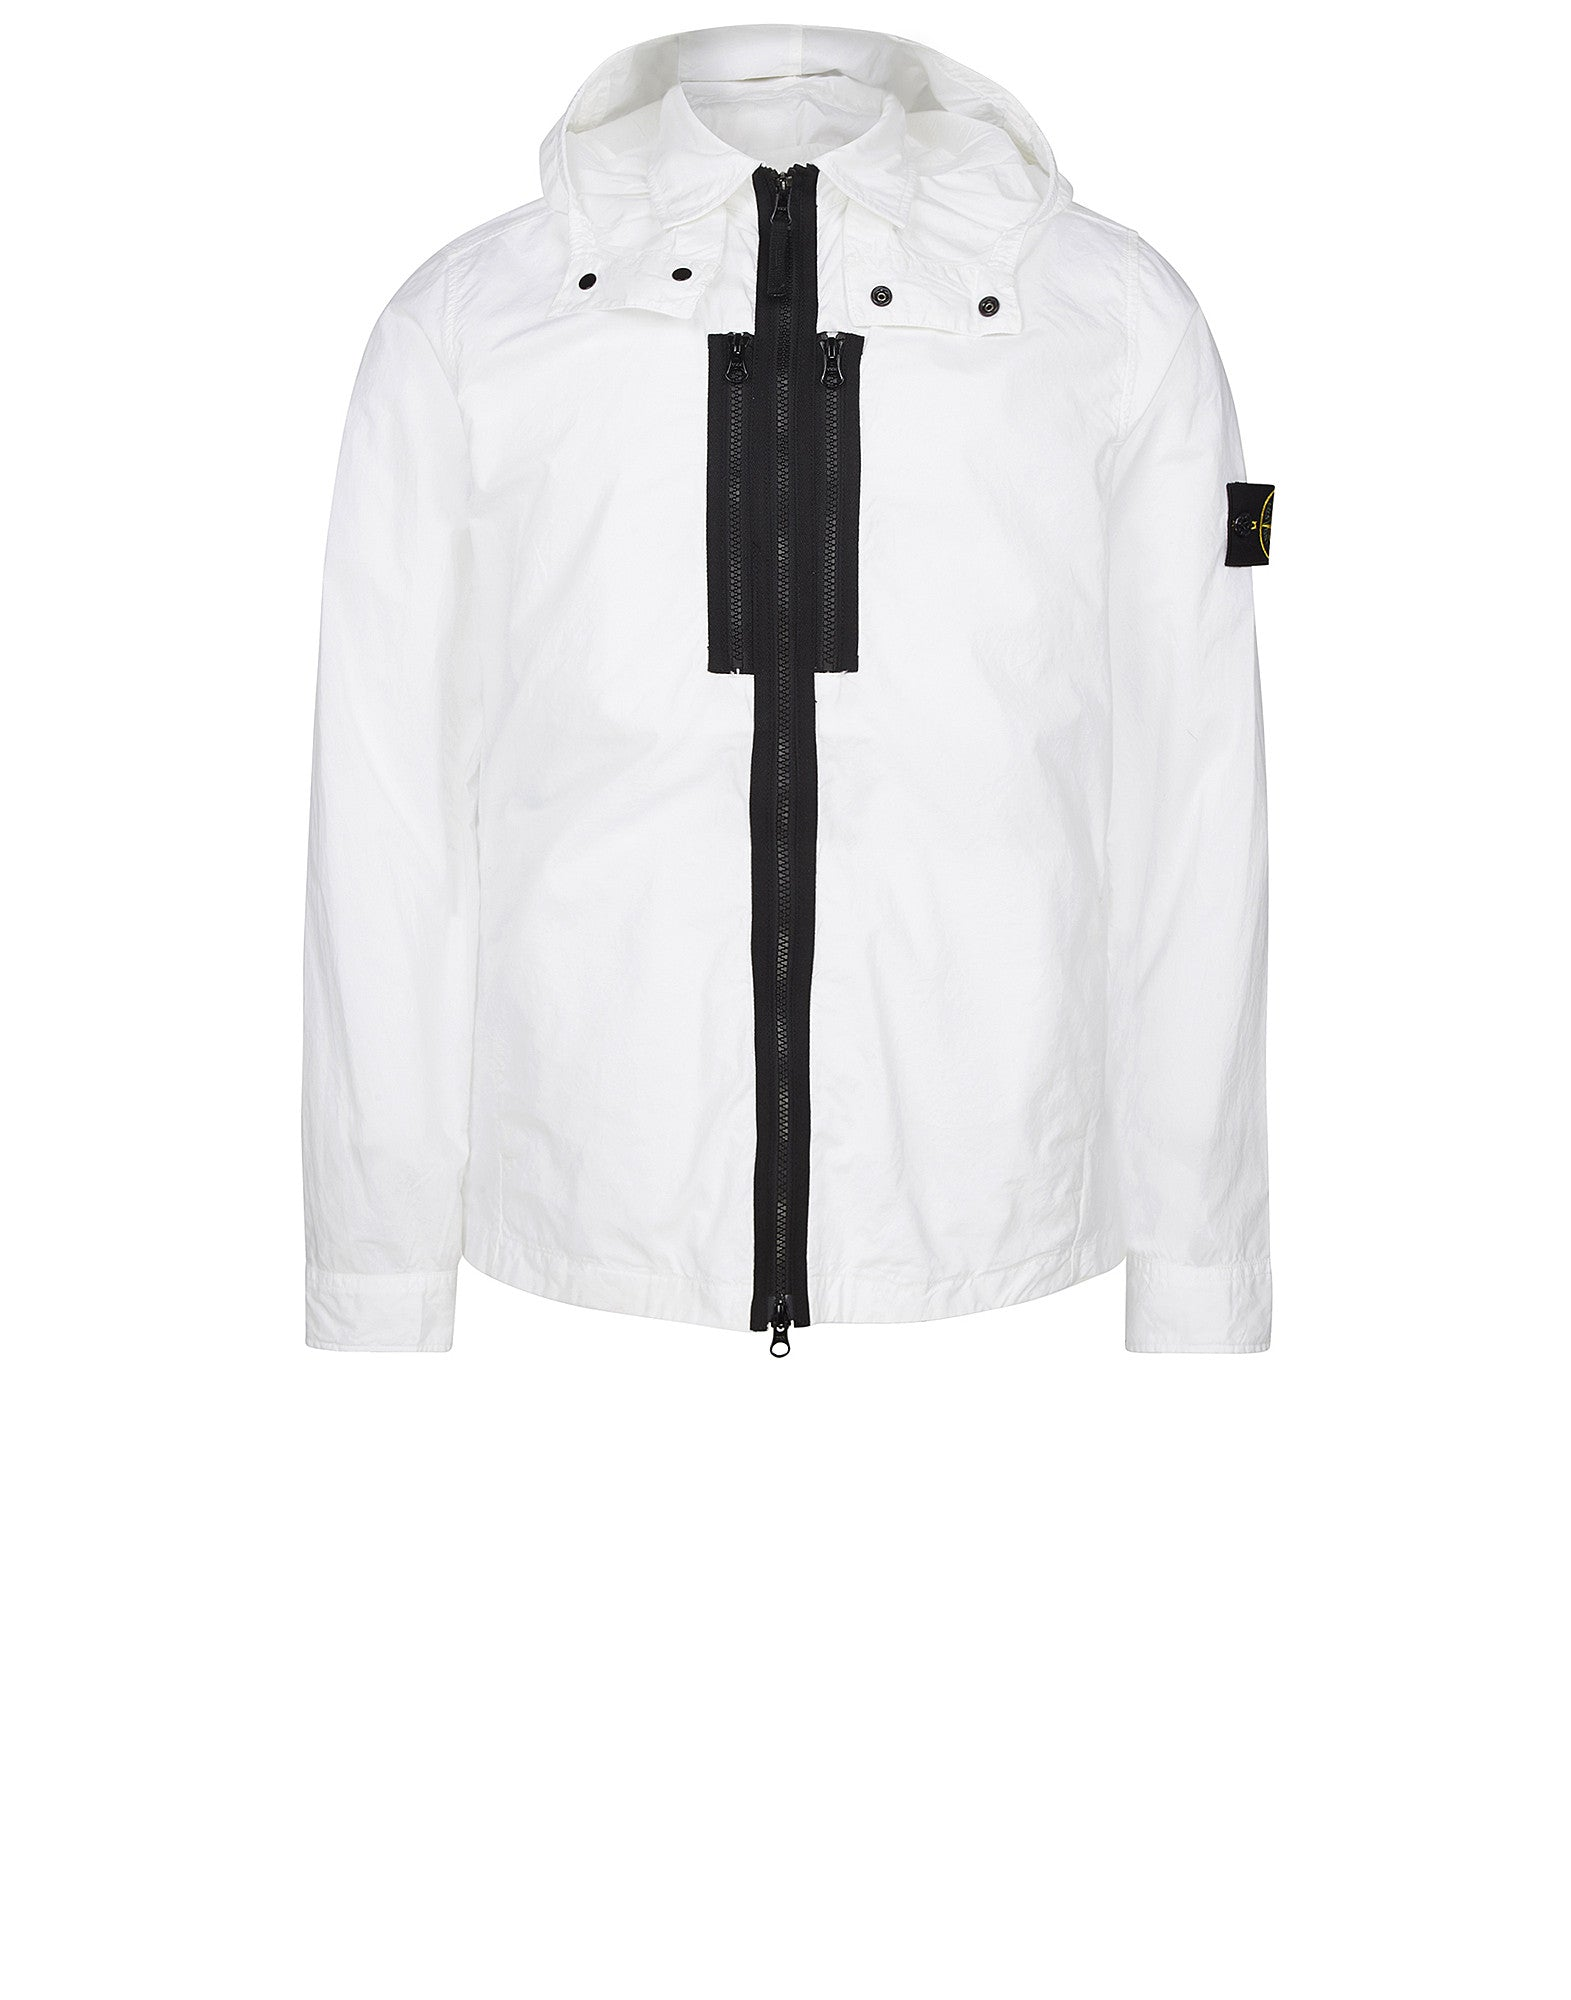 11110 Lightweight Tela Overshirt in White